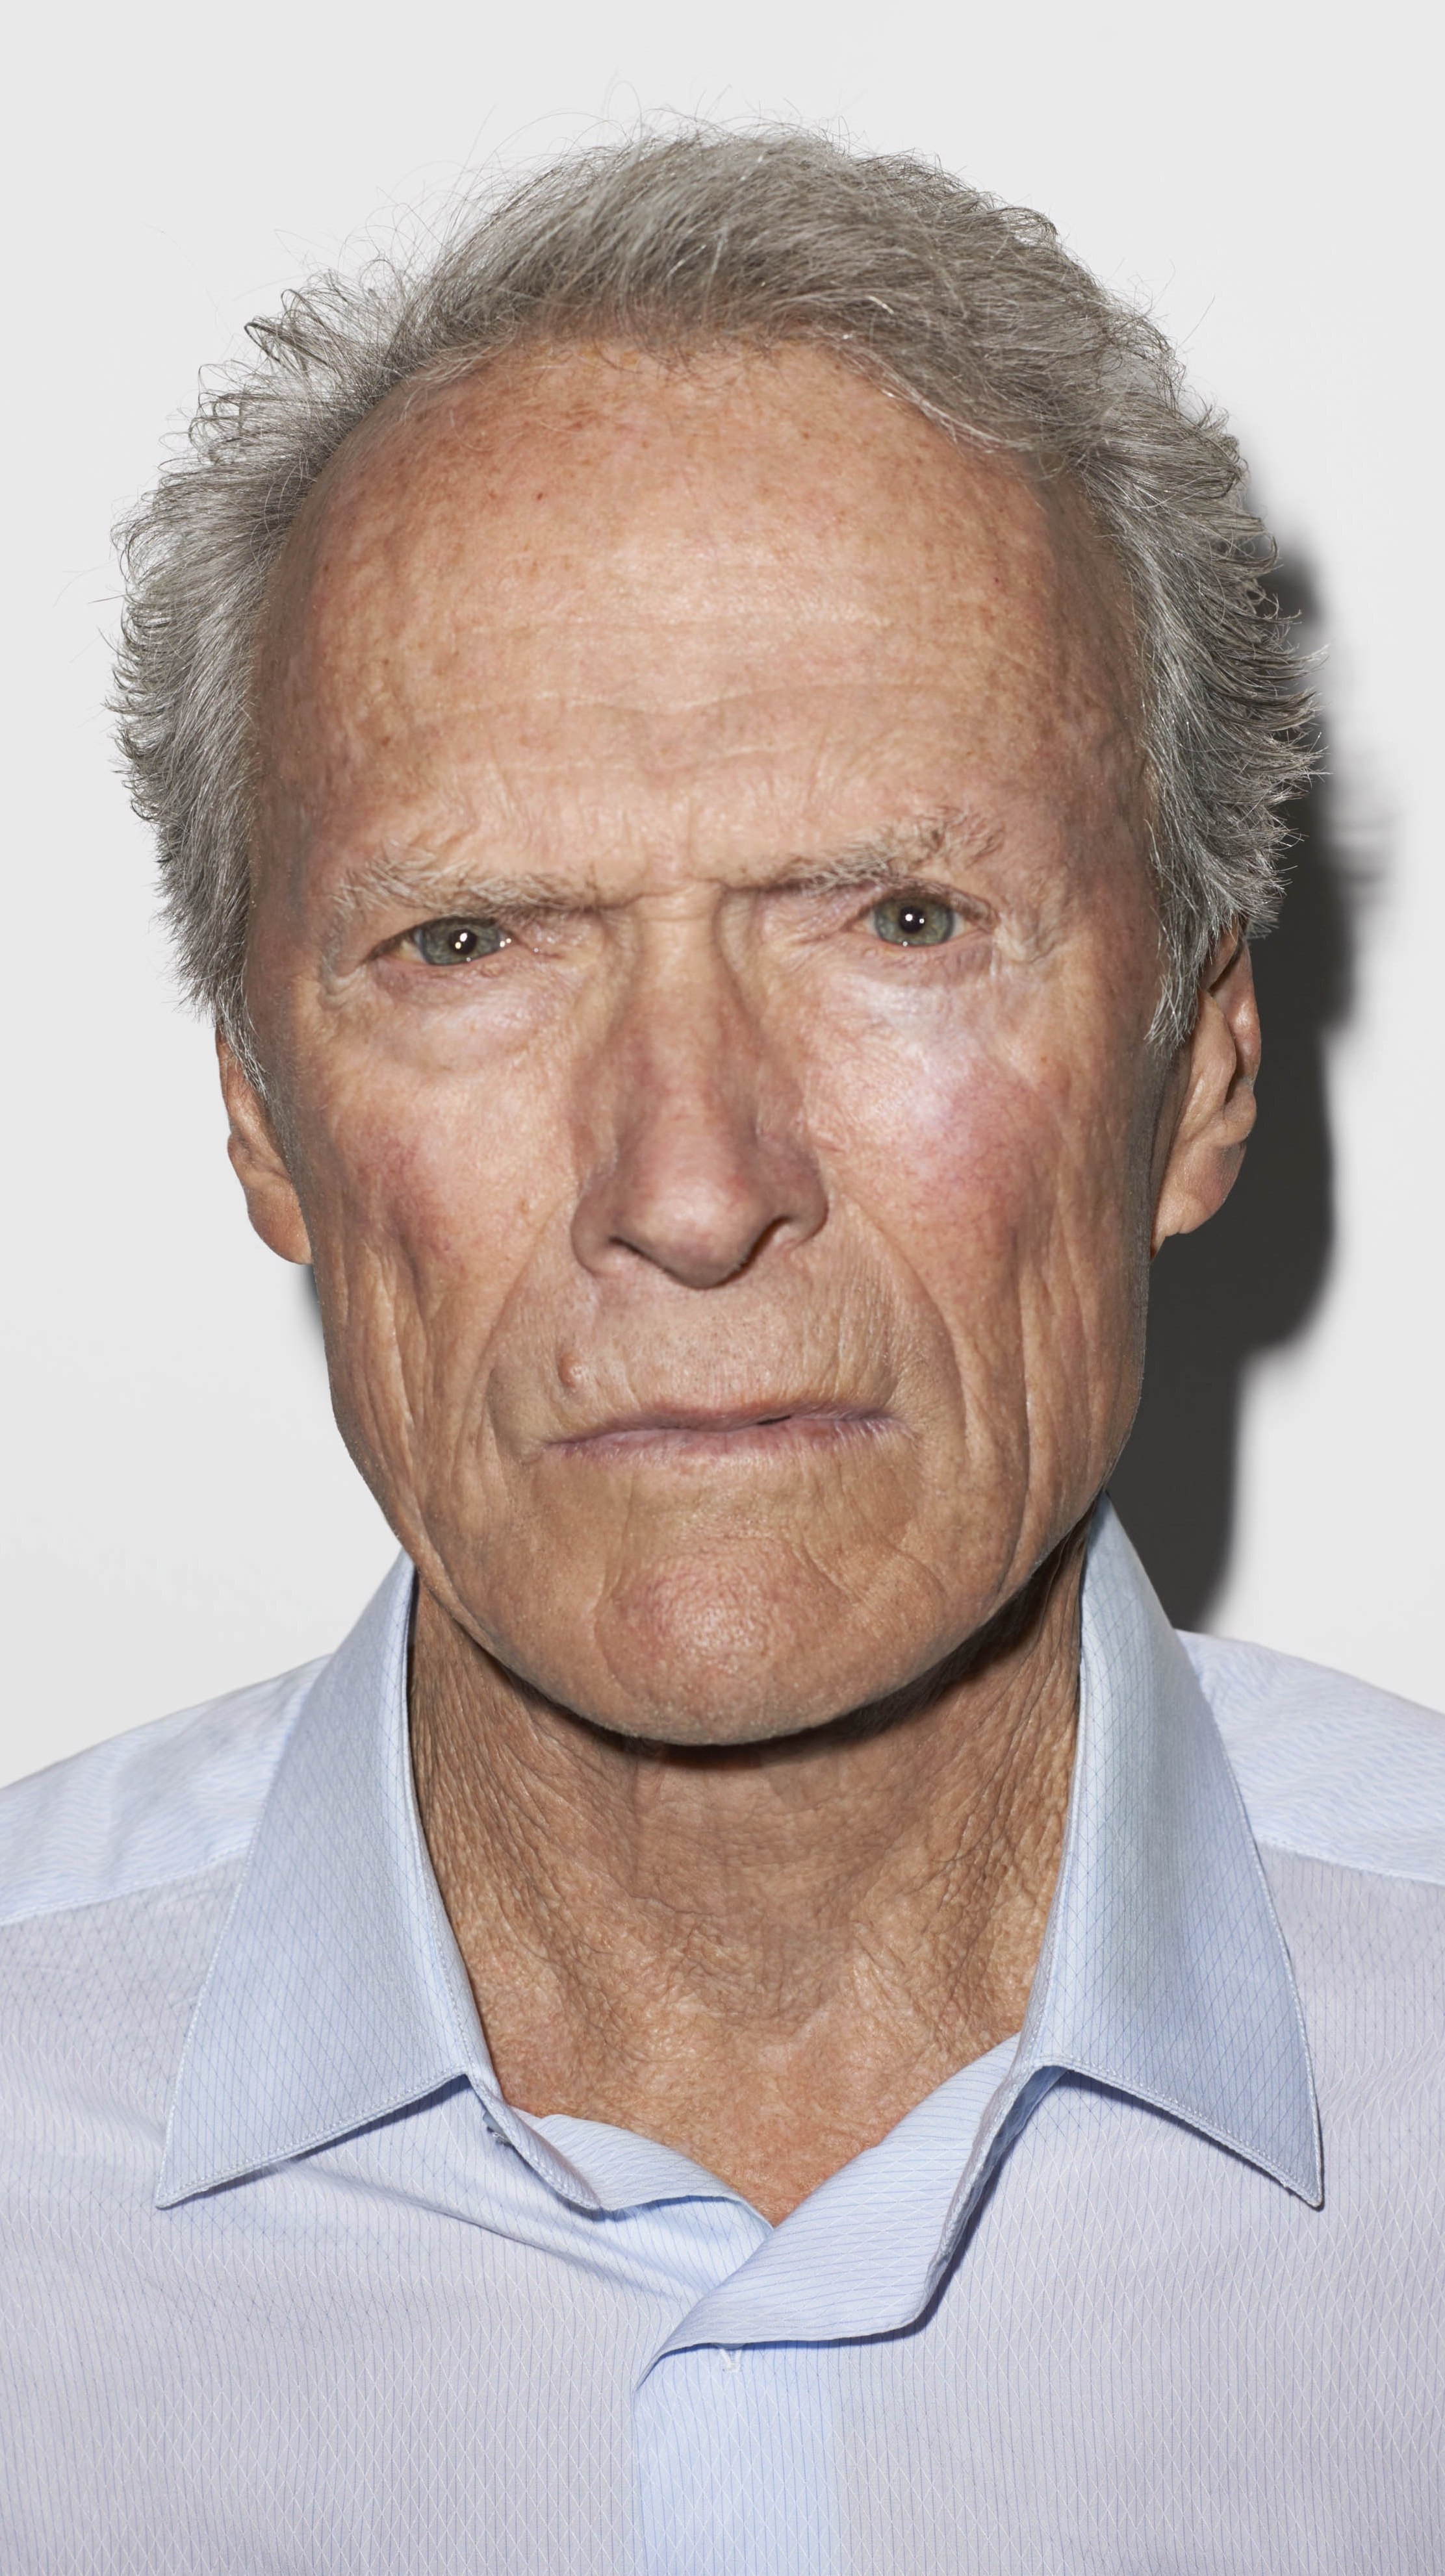 esquire sept issue clint eastwood photo 15 Unexpected Celeb Photos From History